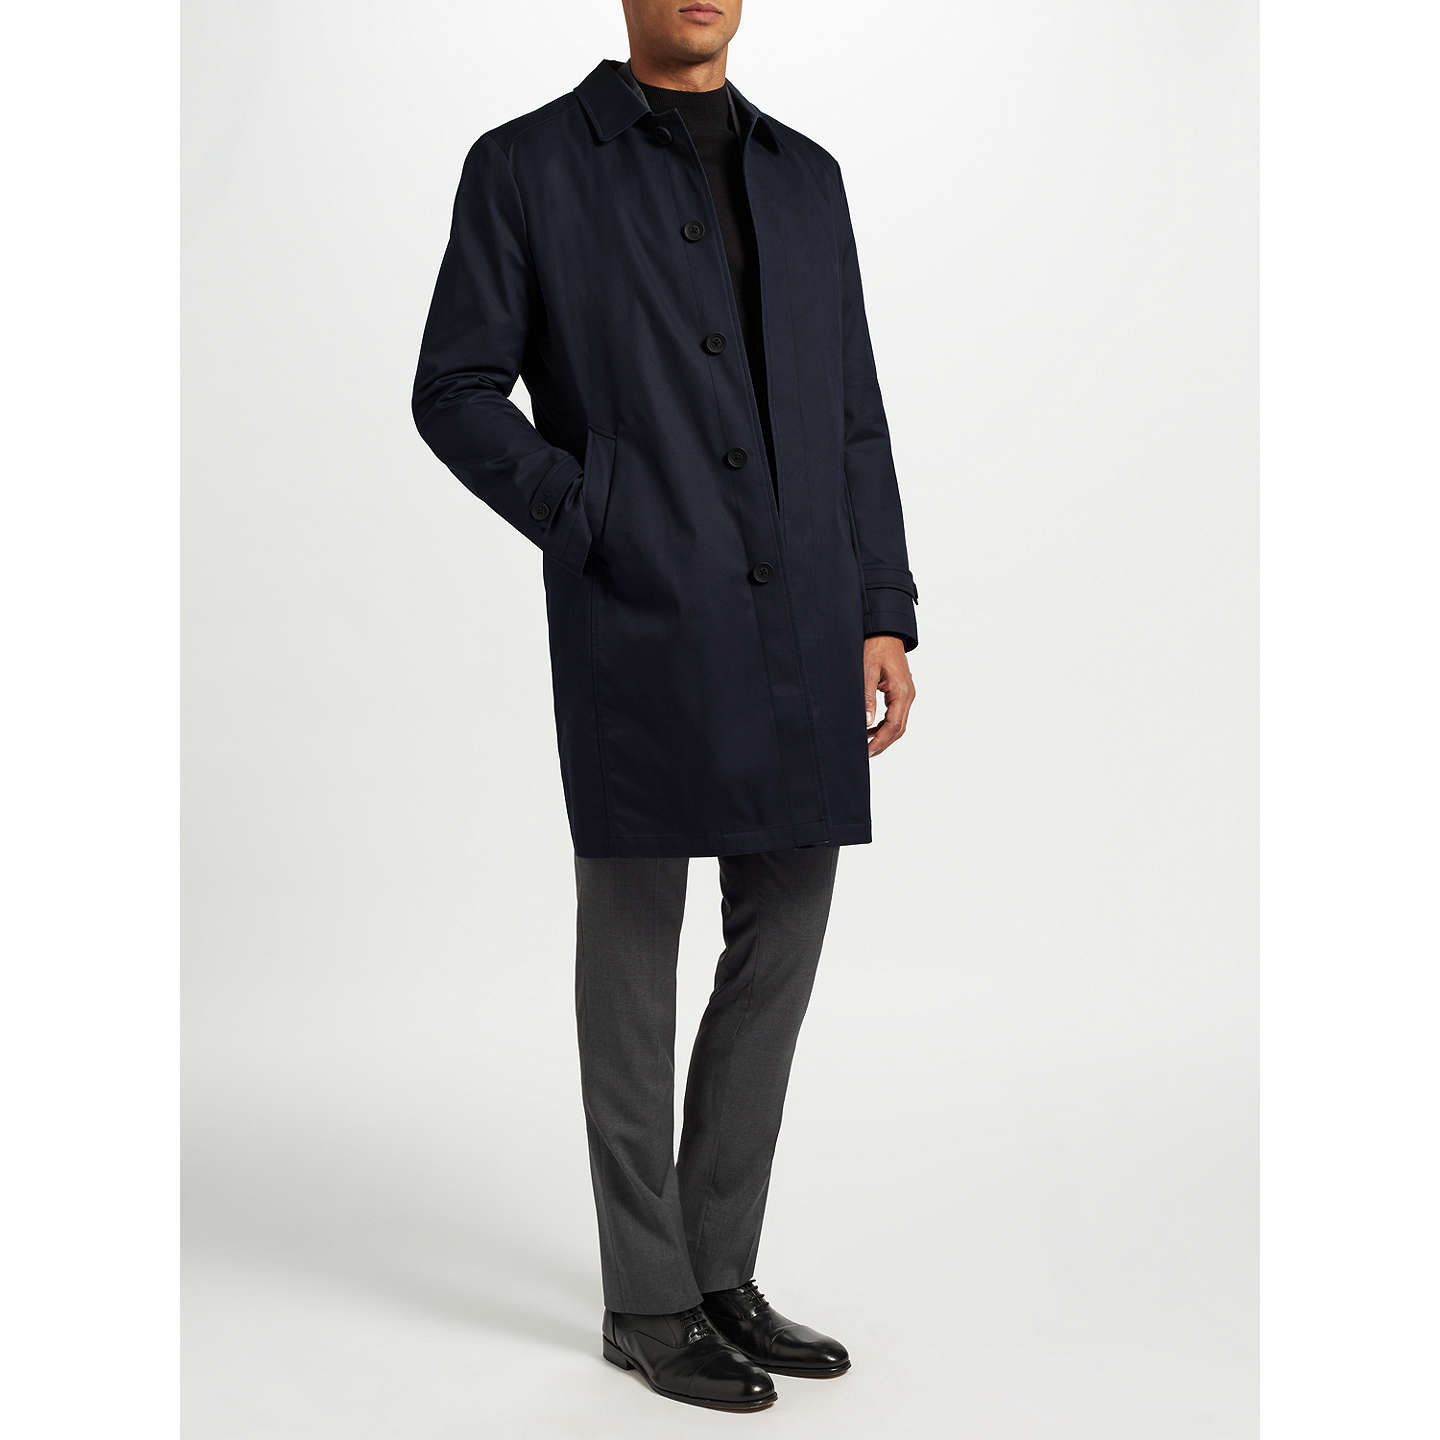 BuyGuards London City Mac, Navy, 36R Online at johnlewis.com